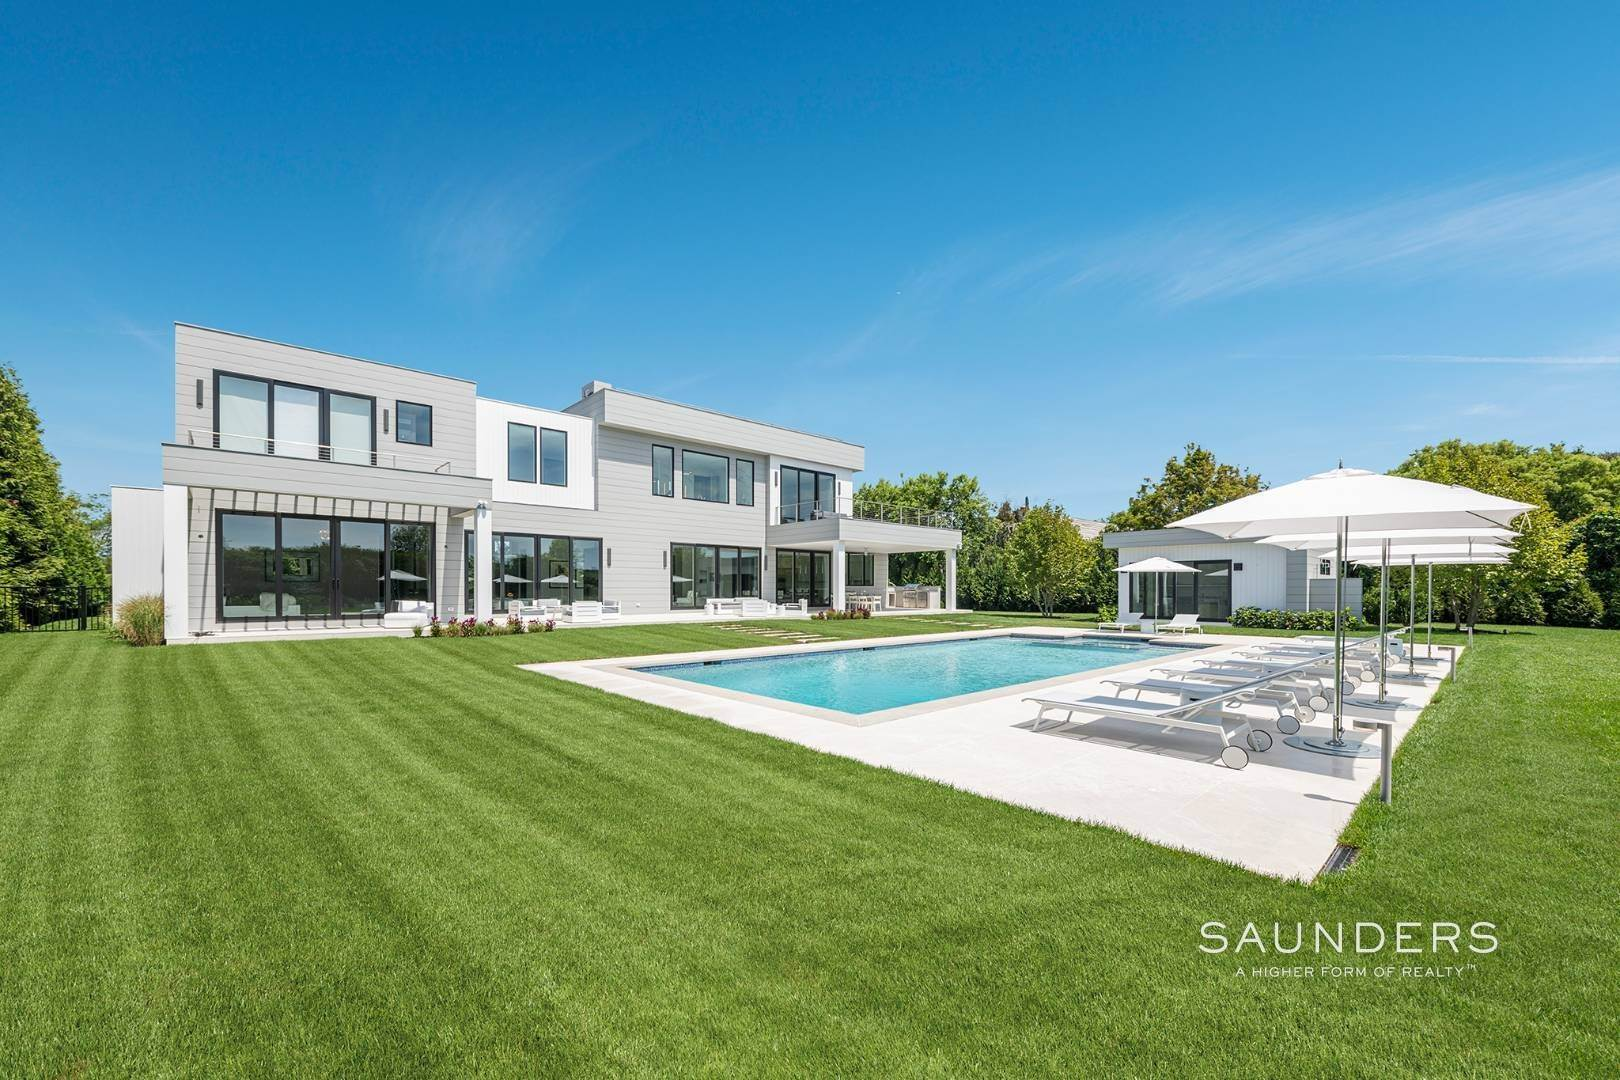 Single Family Homes for Sale at New Ultramodern With Ocean Views And Very Close To The Beach Bridgehampton, Southampton Town, NY 11932